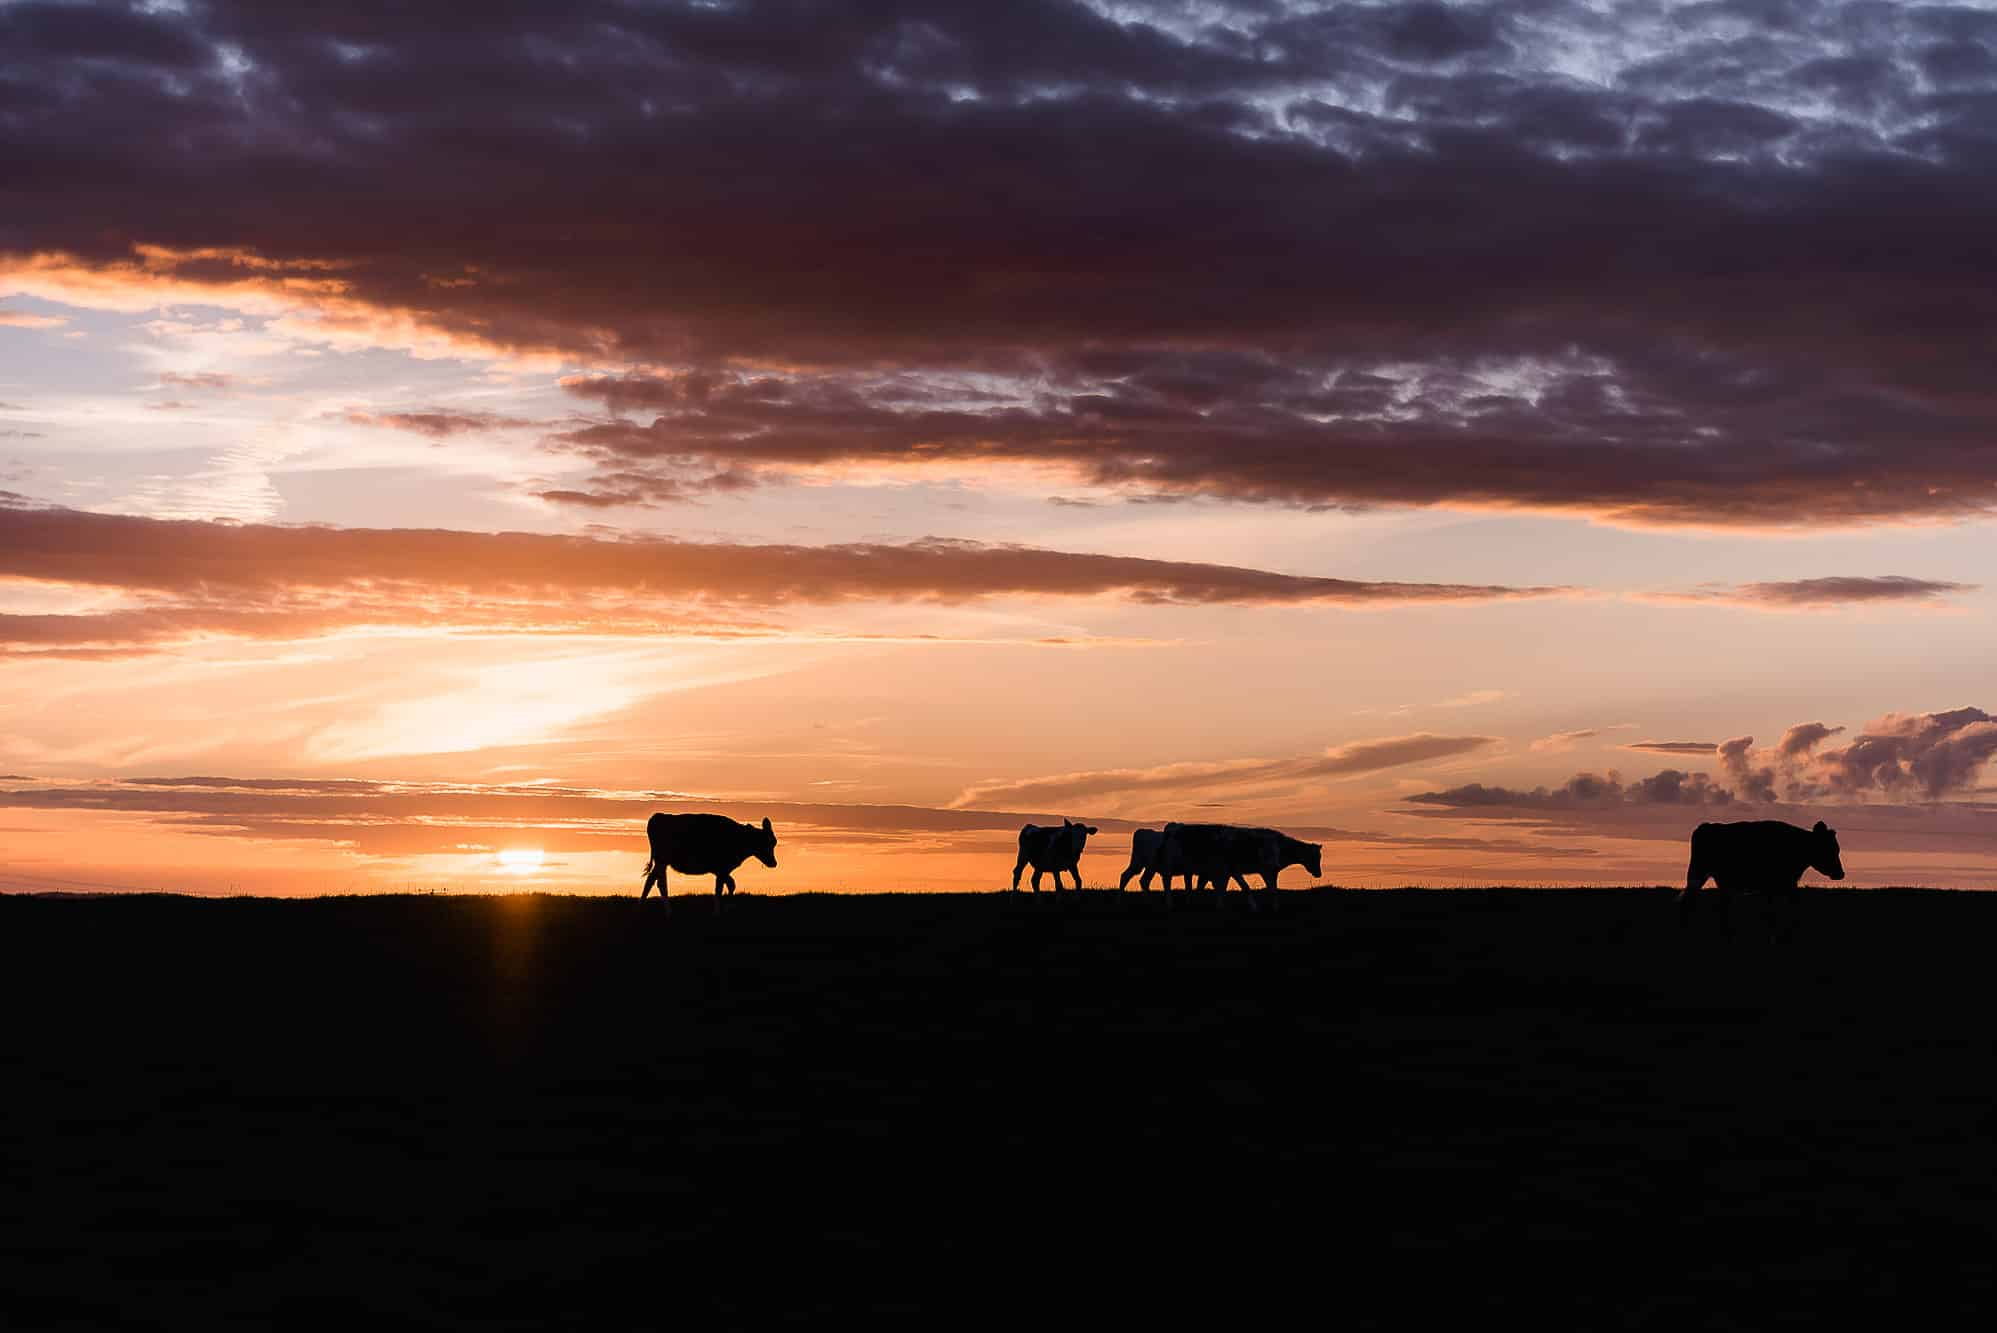 Cows in the field with a great sunset